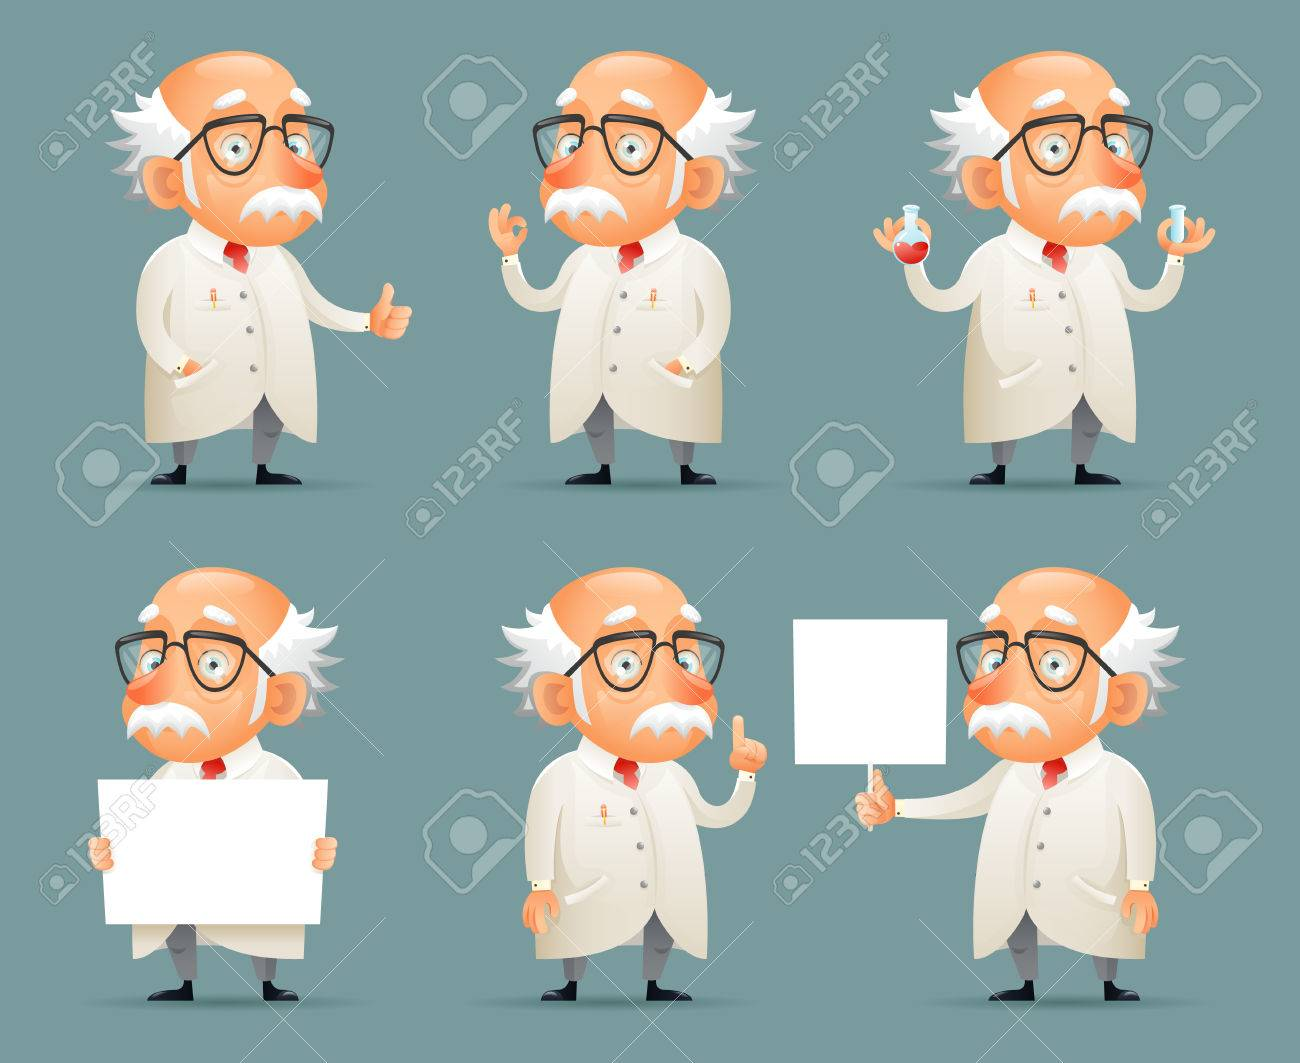 Old Scientist Character Icons Set Retro Cartoon Design Mobile Game Vector Illustration Archivio Fotografico - 74655387